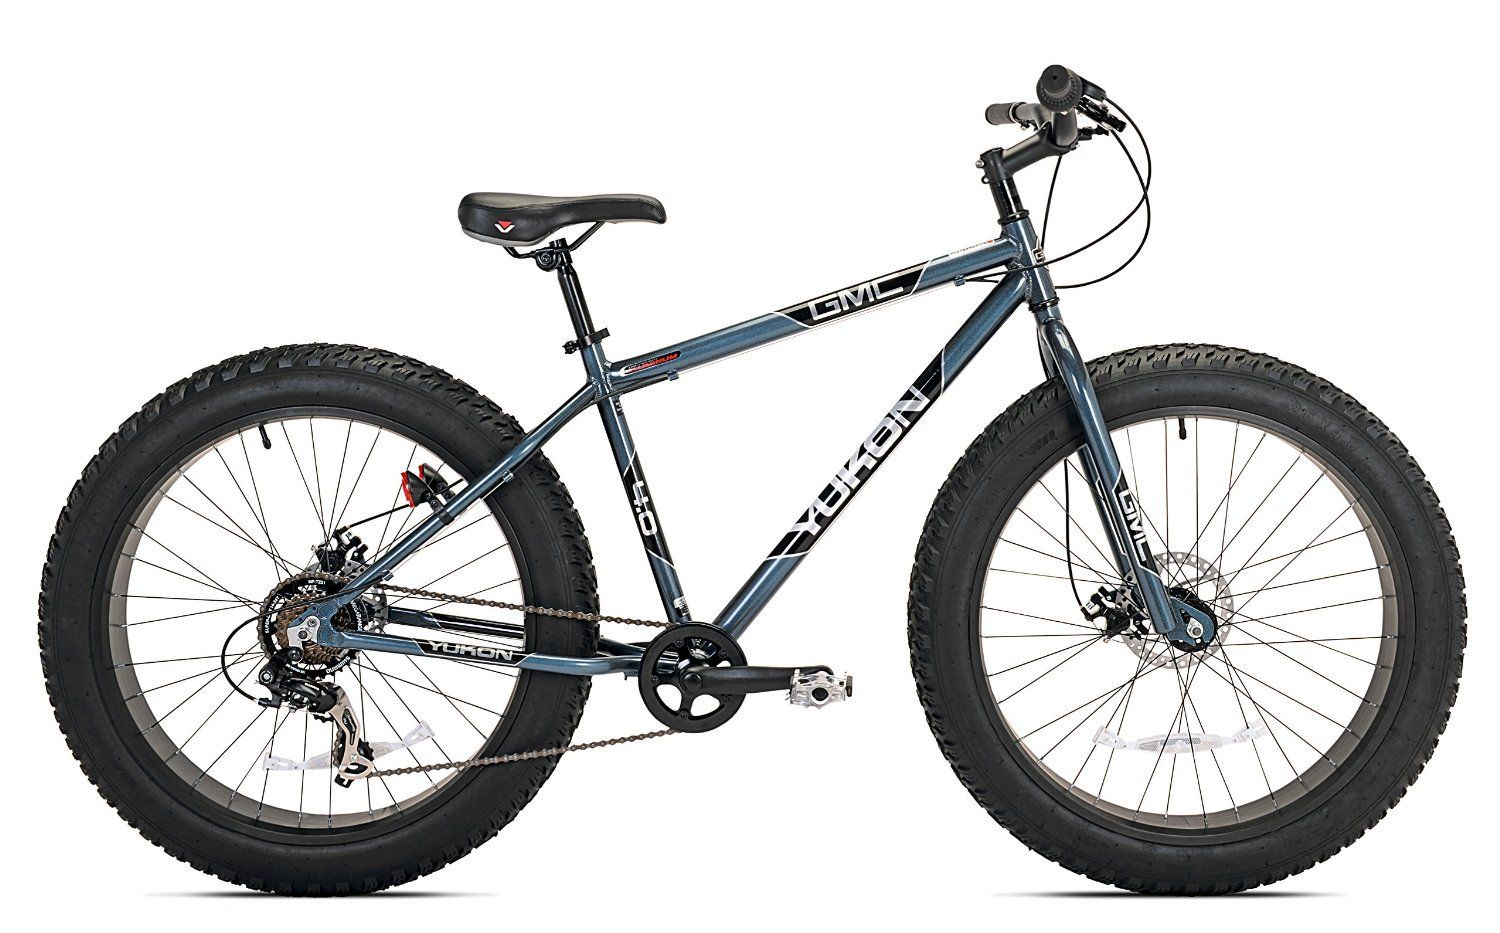 Pin On Mountain Bikes Accessories Info